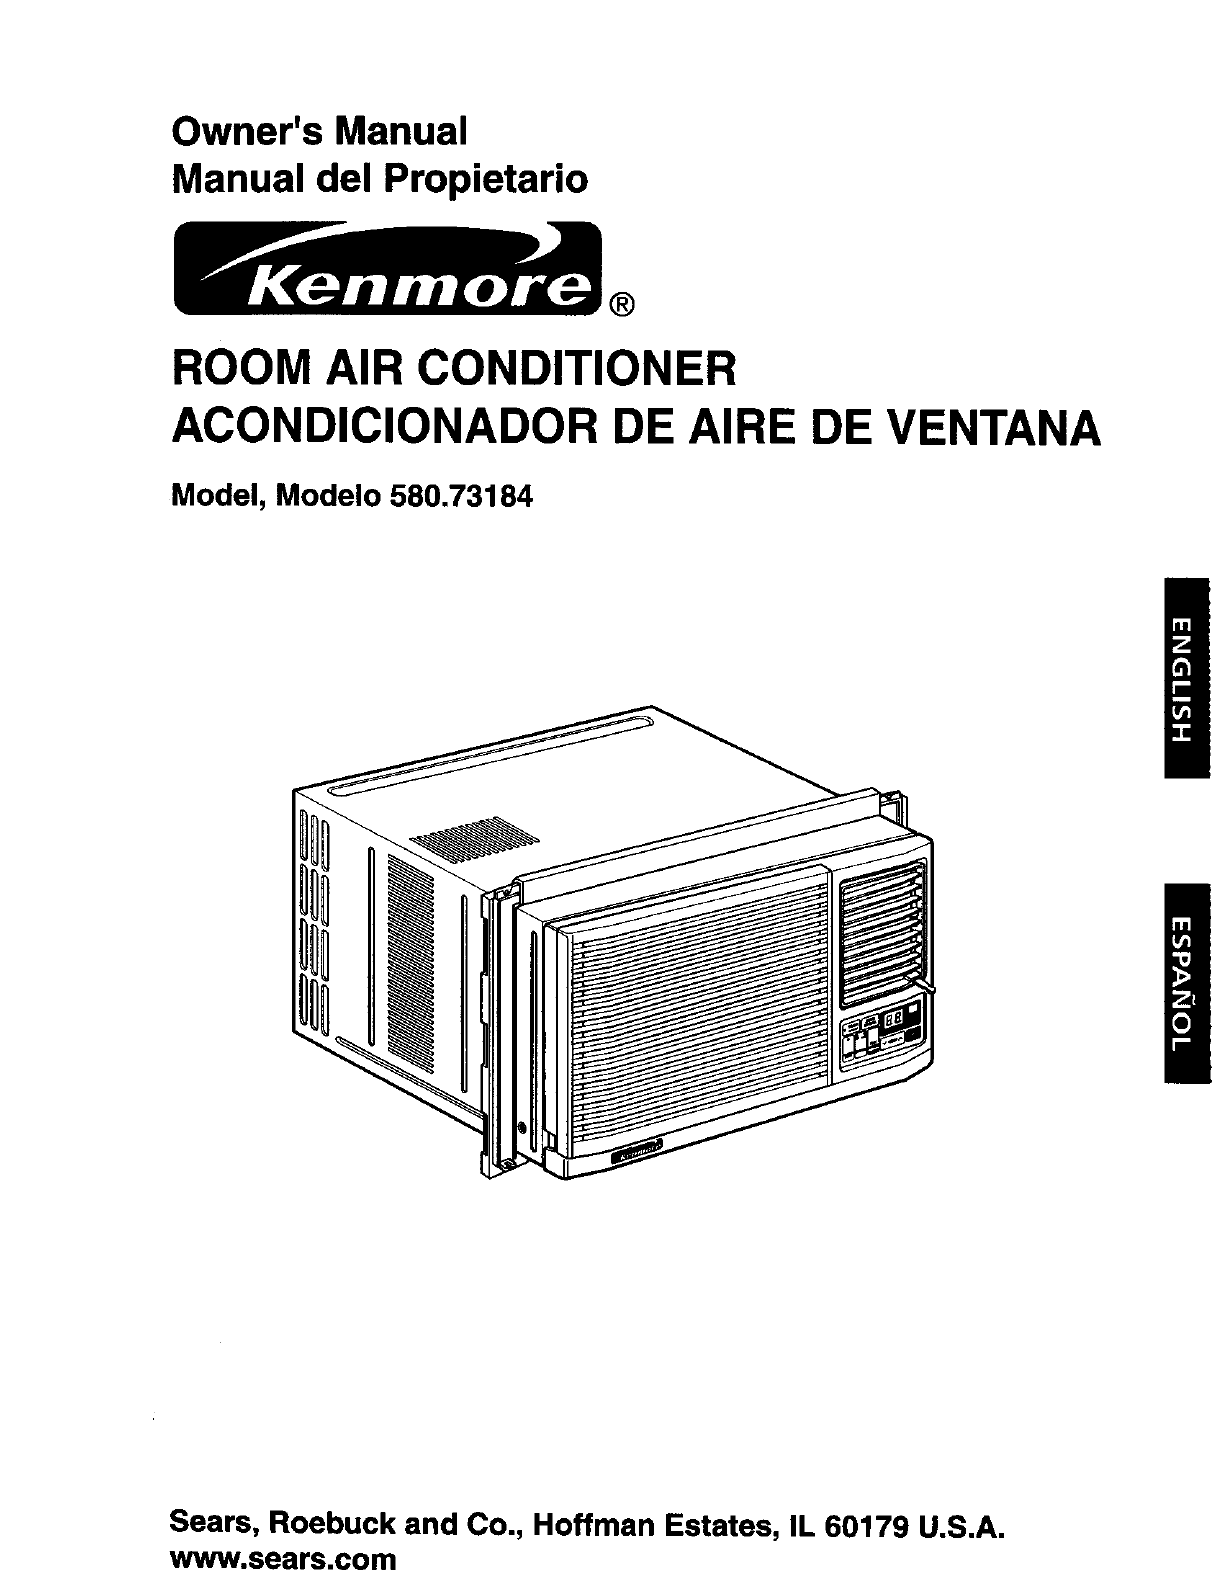 Kenmore 58073184300 User Manual Air Conditioner Manuals And Guides Wiring Diagram L0306046